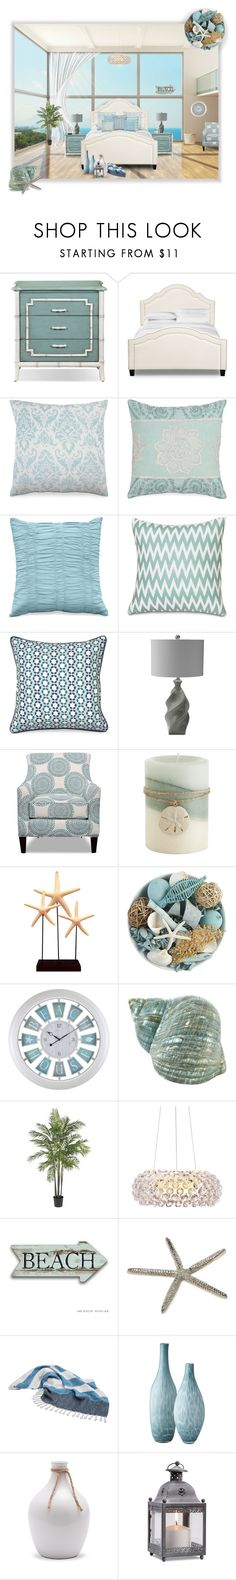 Beachy Bedroom by amsigfurniture on Polyvore featuring interior, interiors, interior design, home, home decor, interior decorating, Pier 1 Imports, Nearly Natural, Lazy Susan and Indego Africa